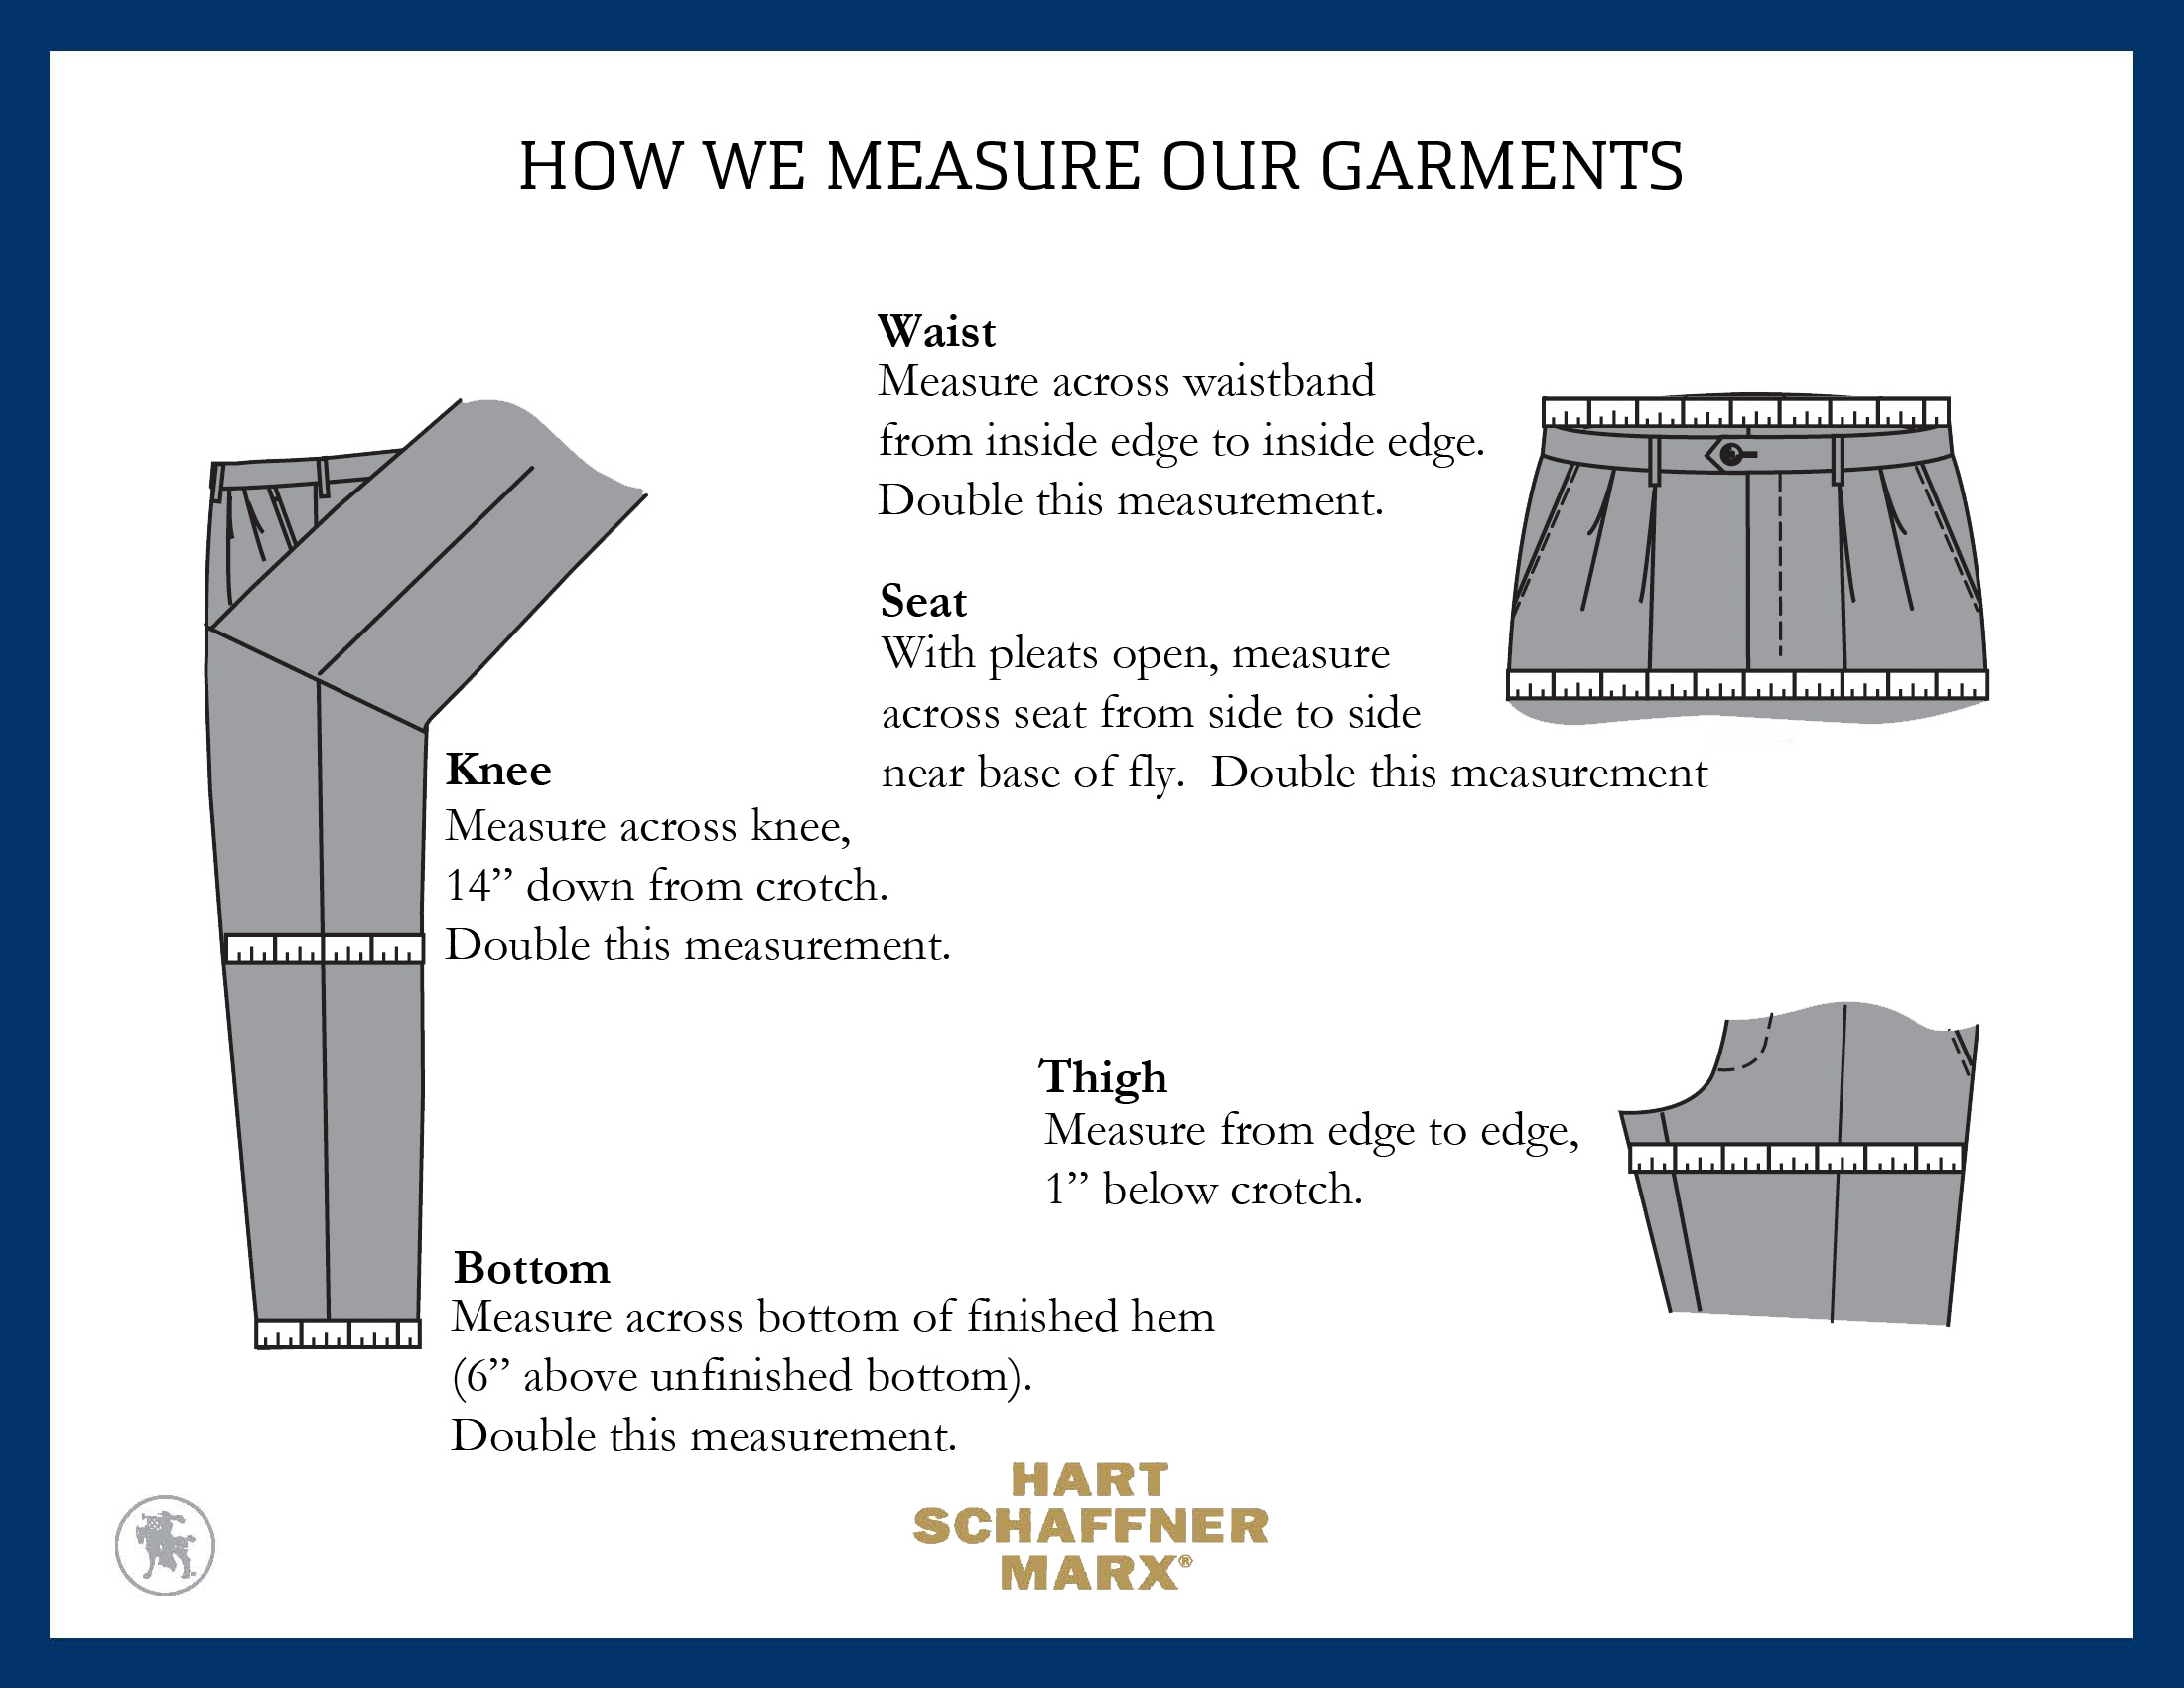 Measuring tailored clothing